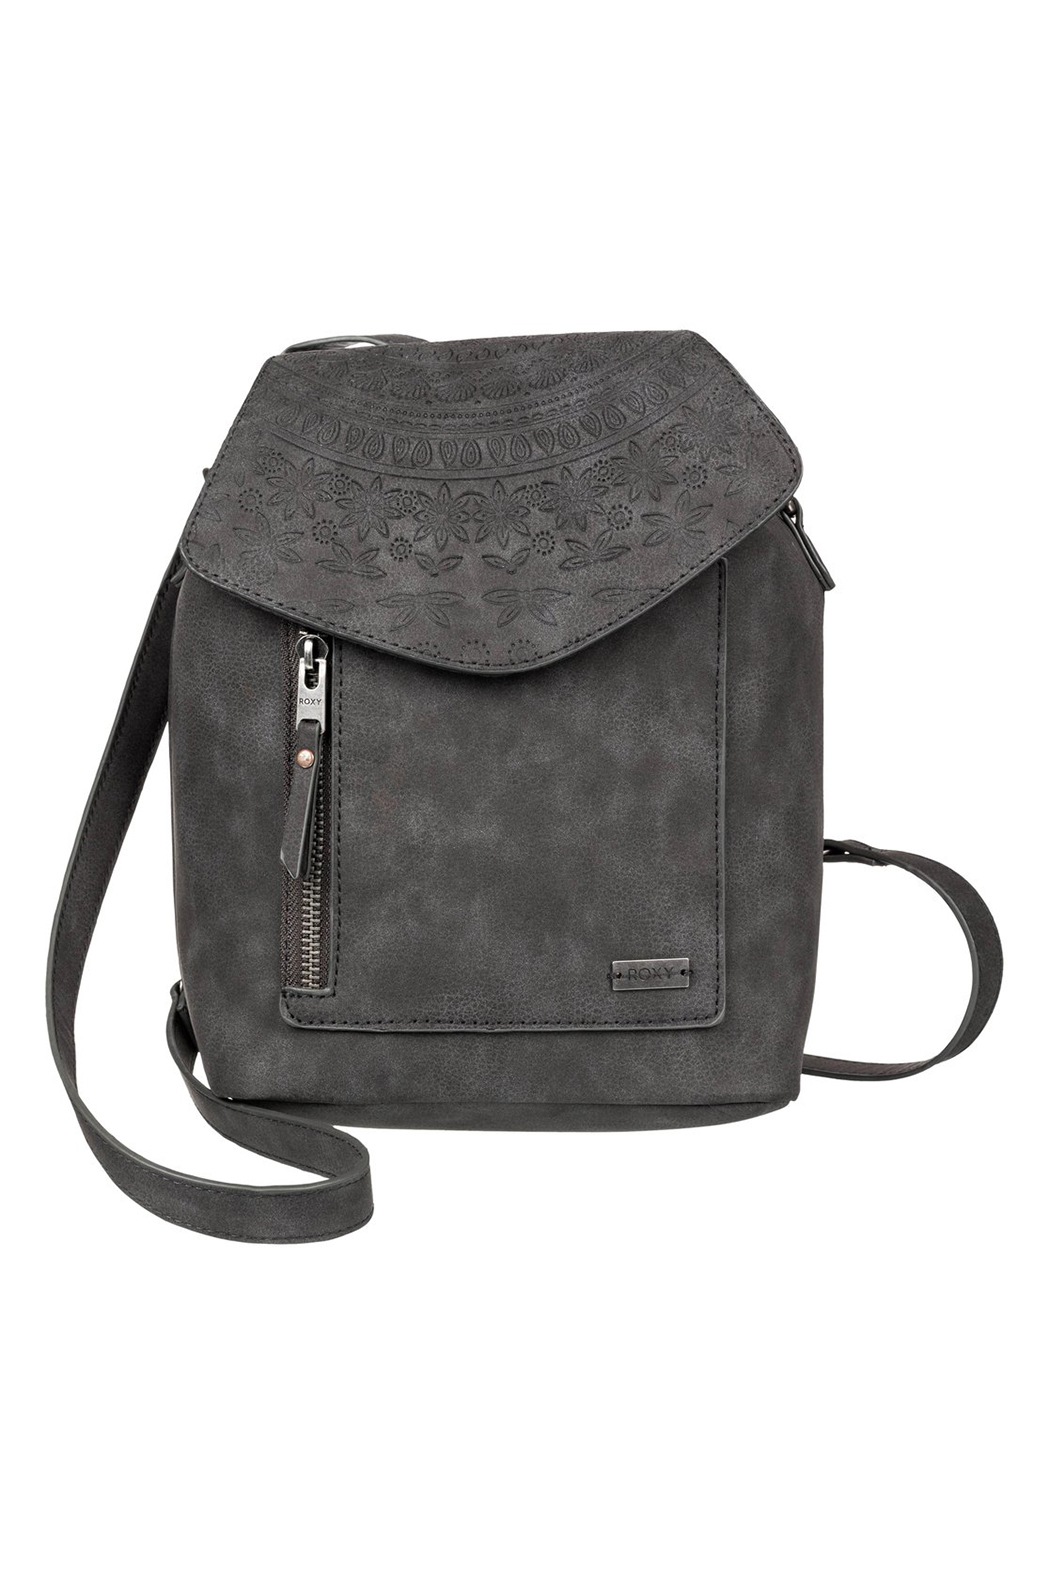 Roxy Like A River Small Faux Leather Backpack - Main Image